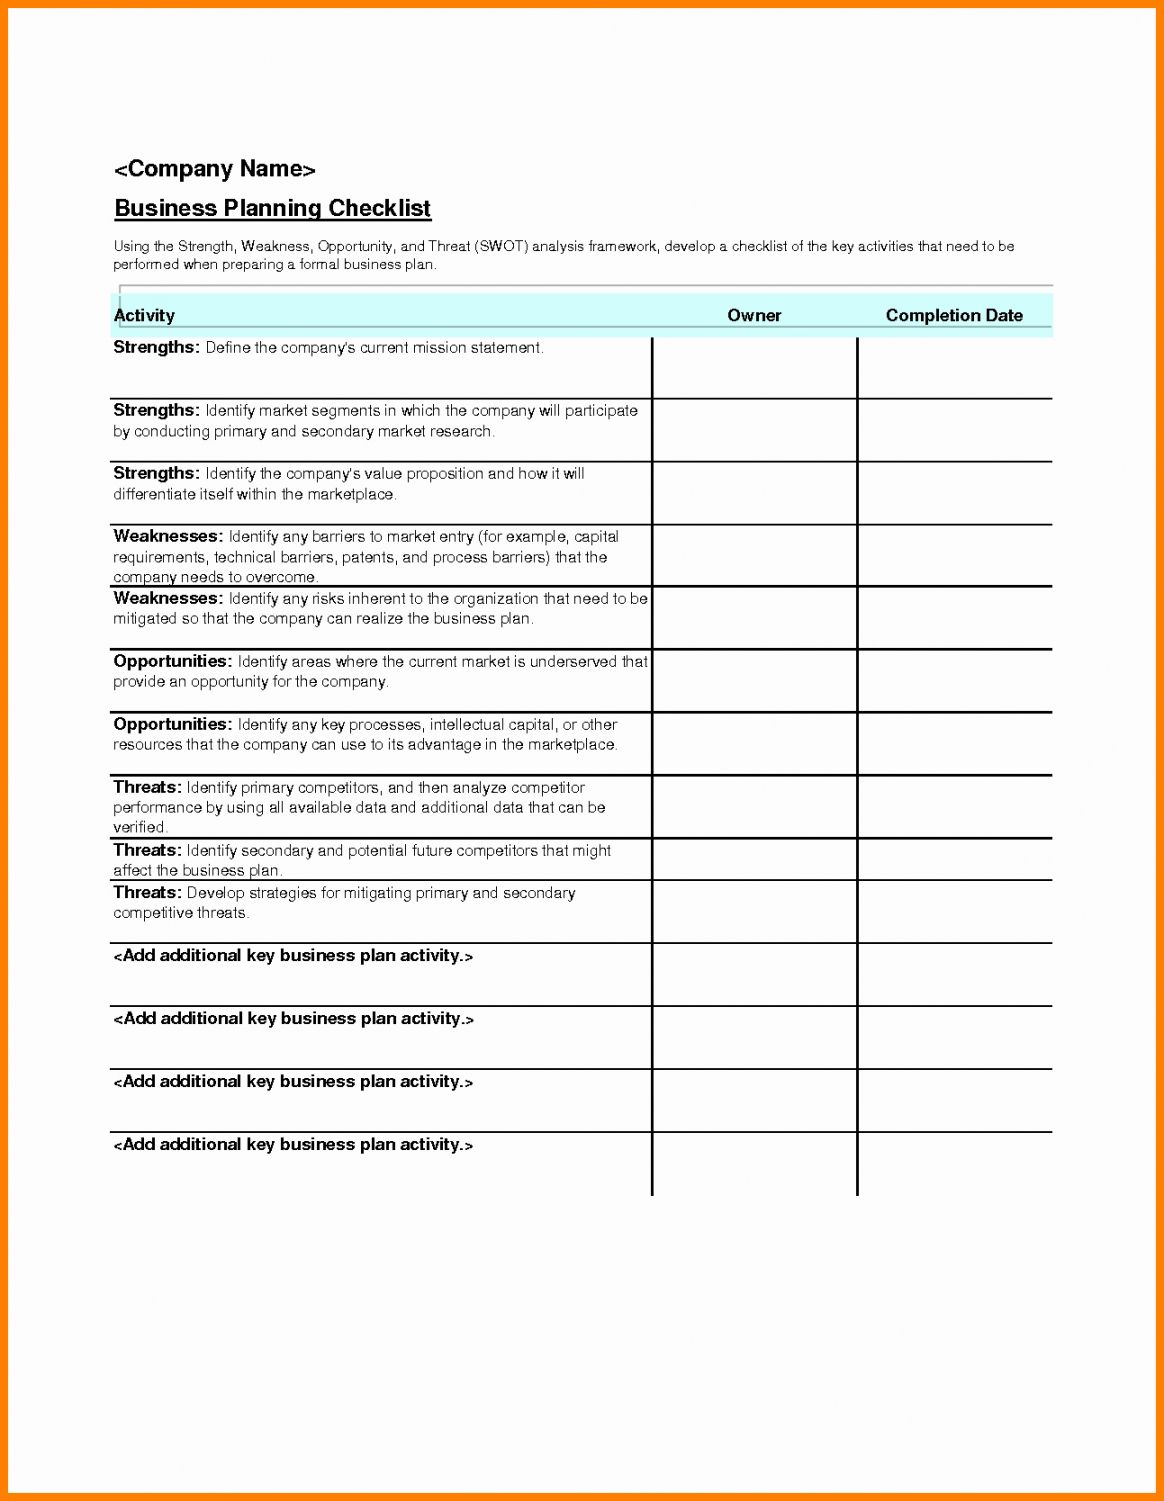 Get Our Sample Of Corporate Event Checklist Template In